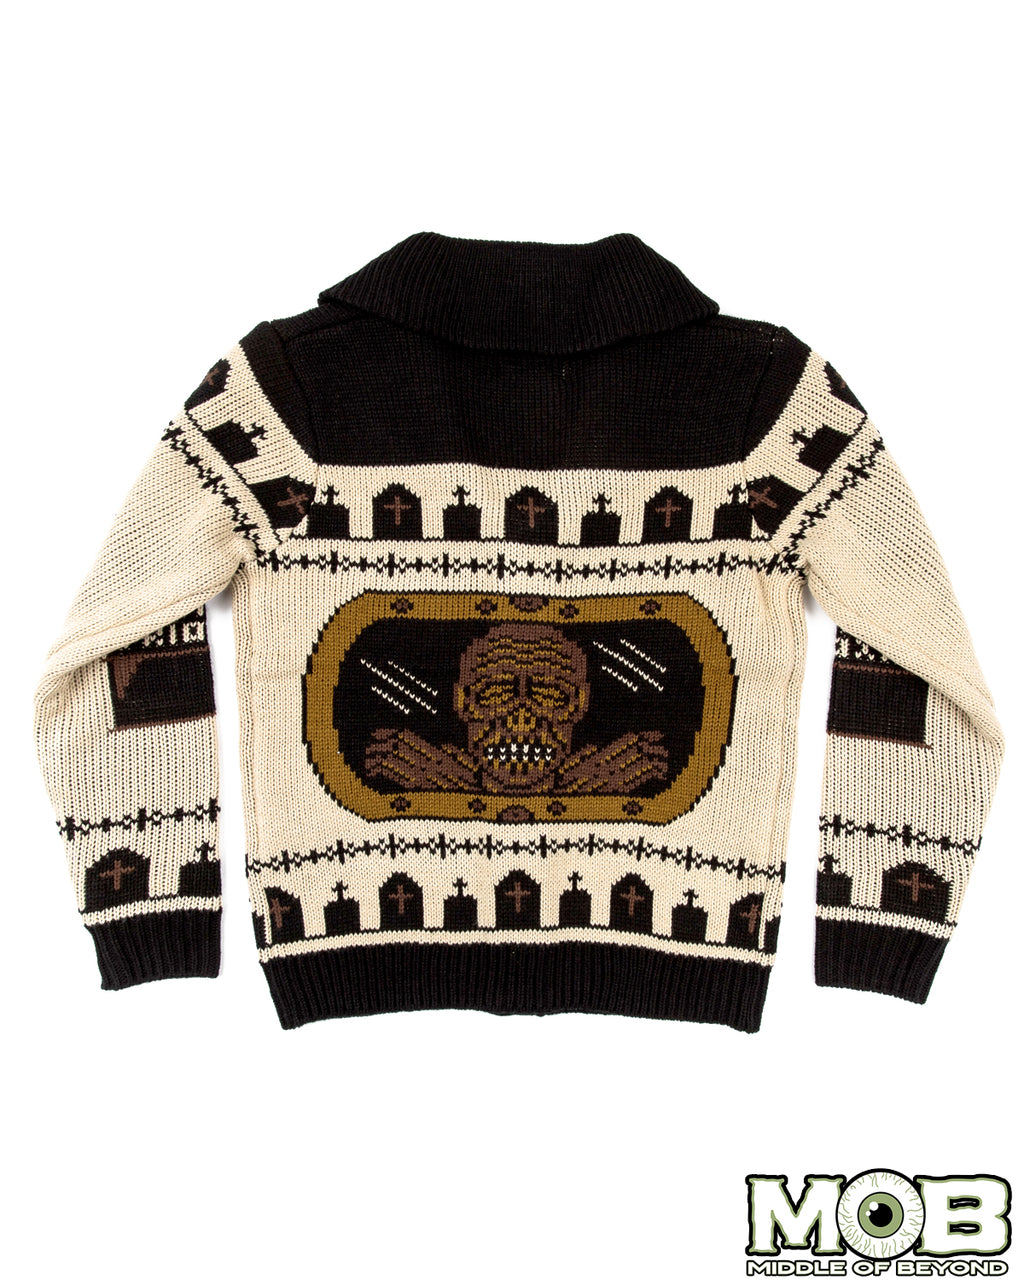 Return of the Living Dead Cardigan Version 2